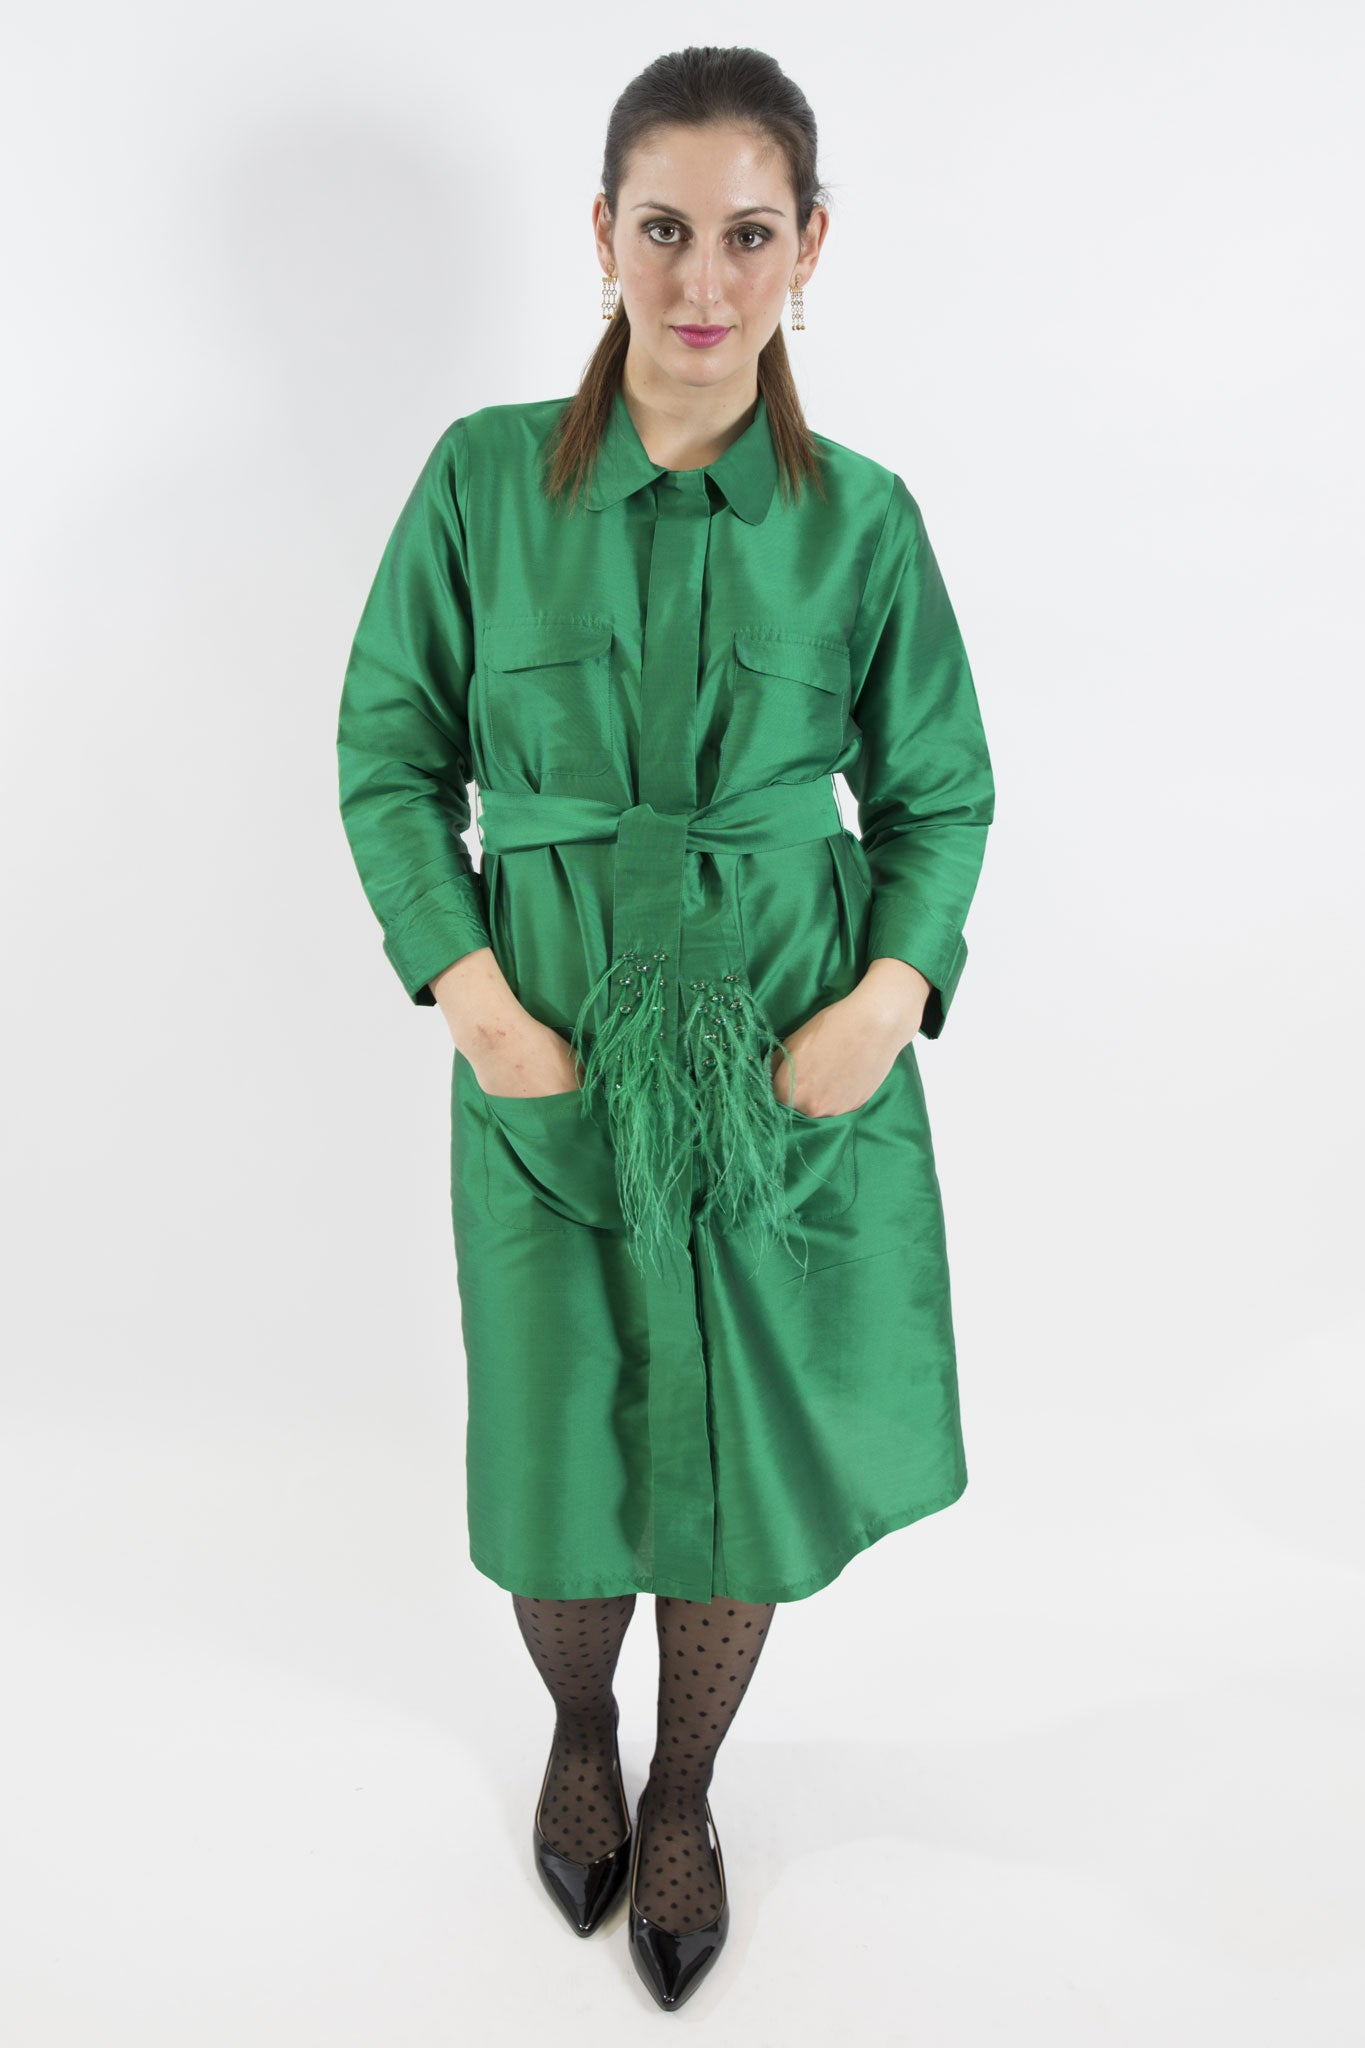 Sketch London Emerald Green Ostrich Feather Trench Coat Evening Opera Party cover up ethical sustainable luxury eco women